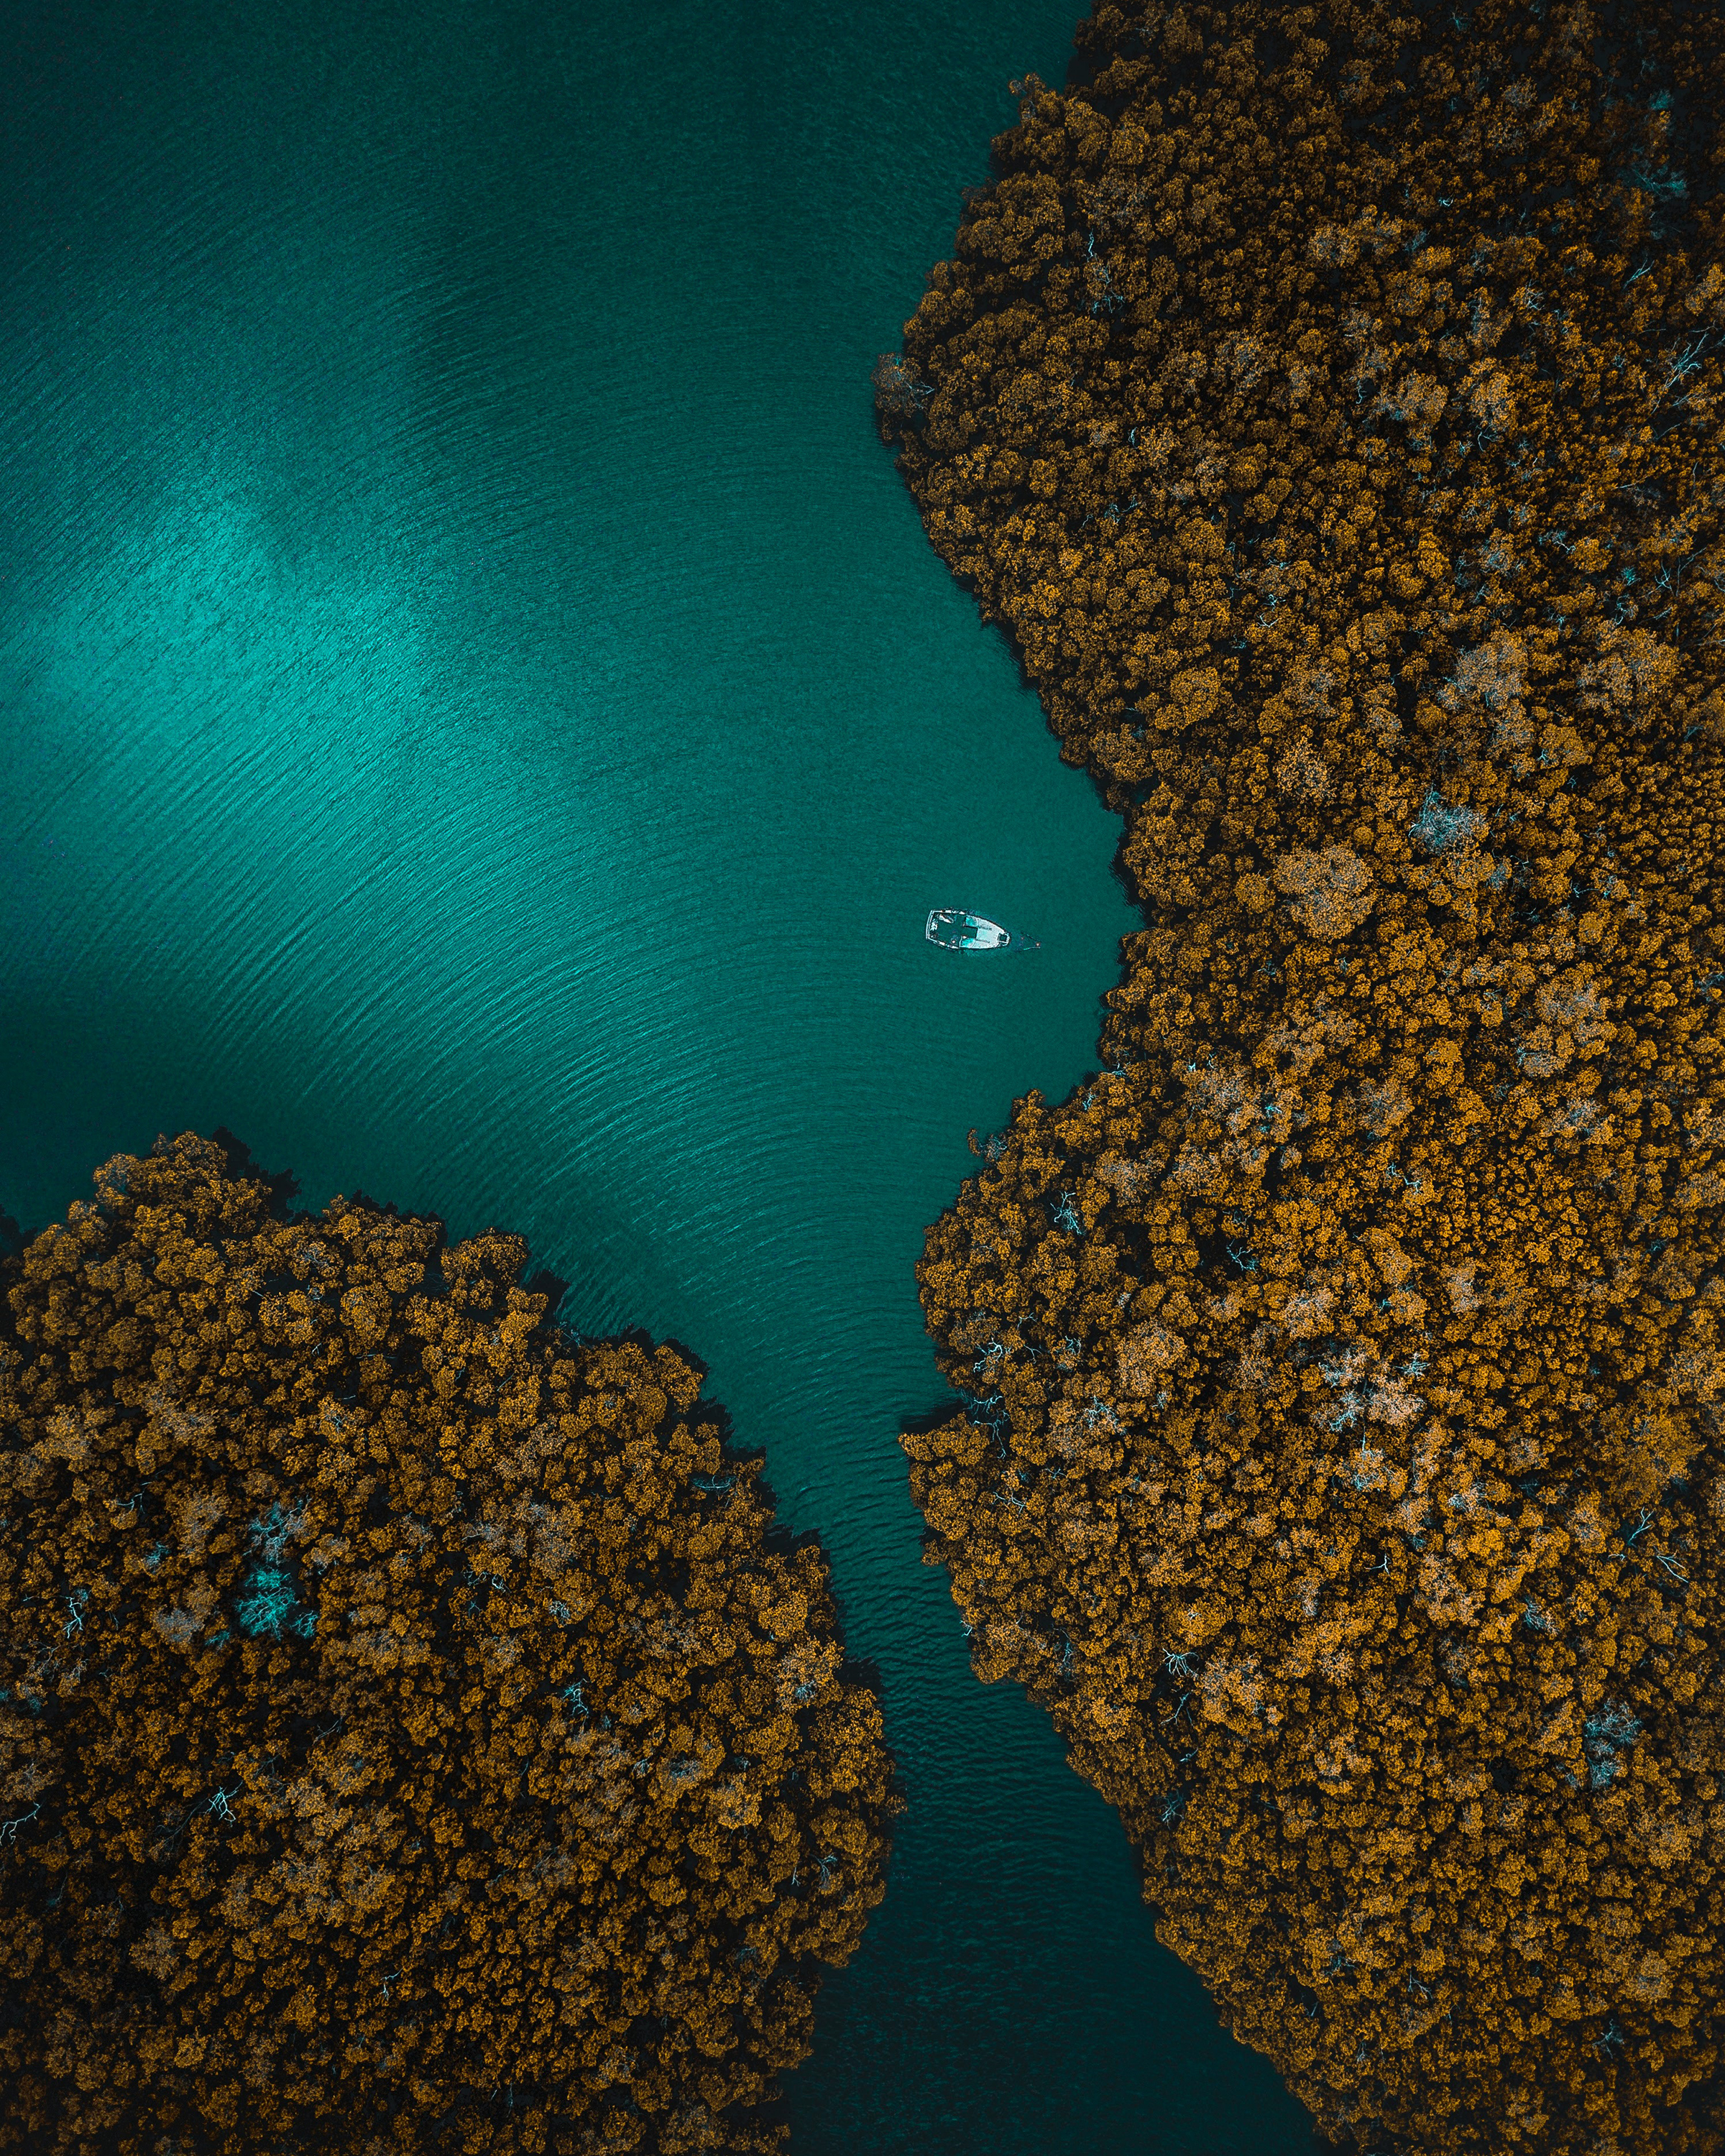 """Check out this awesome drone shot of a sunken ship in Marco Island, Florida. Located in the Gulf of Mexico, the island contains a city by the same name, which has a population of roughly 18,000 people. Marco Island is home to retired astronaut Michael Collins, the seventeenth American in space and one of just 24 people who have flown to the Moon.  25°54'57.7""""N, 81°41'32.7""""W  Source imagery: A2EOrigins"""